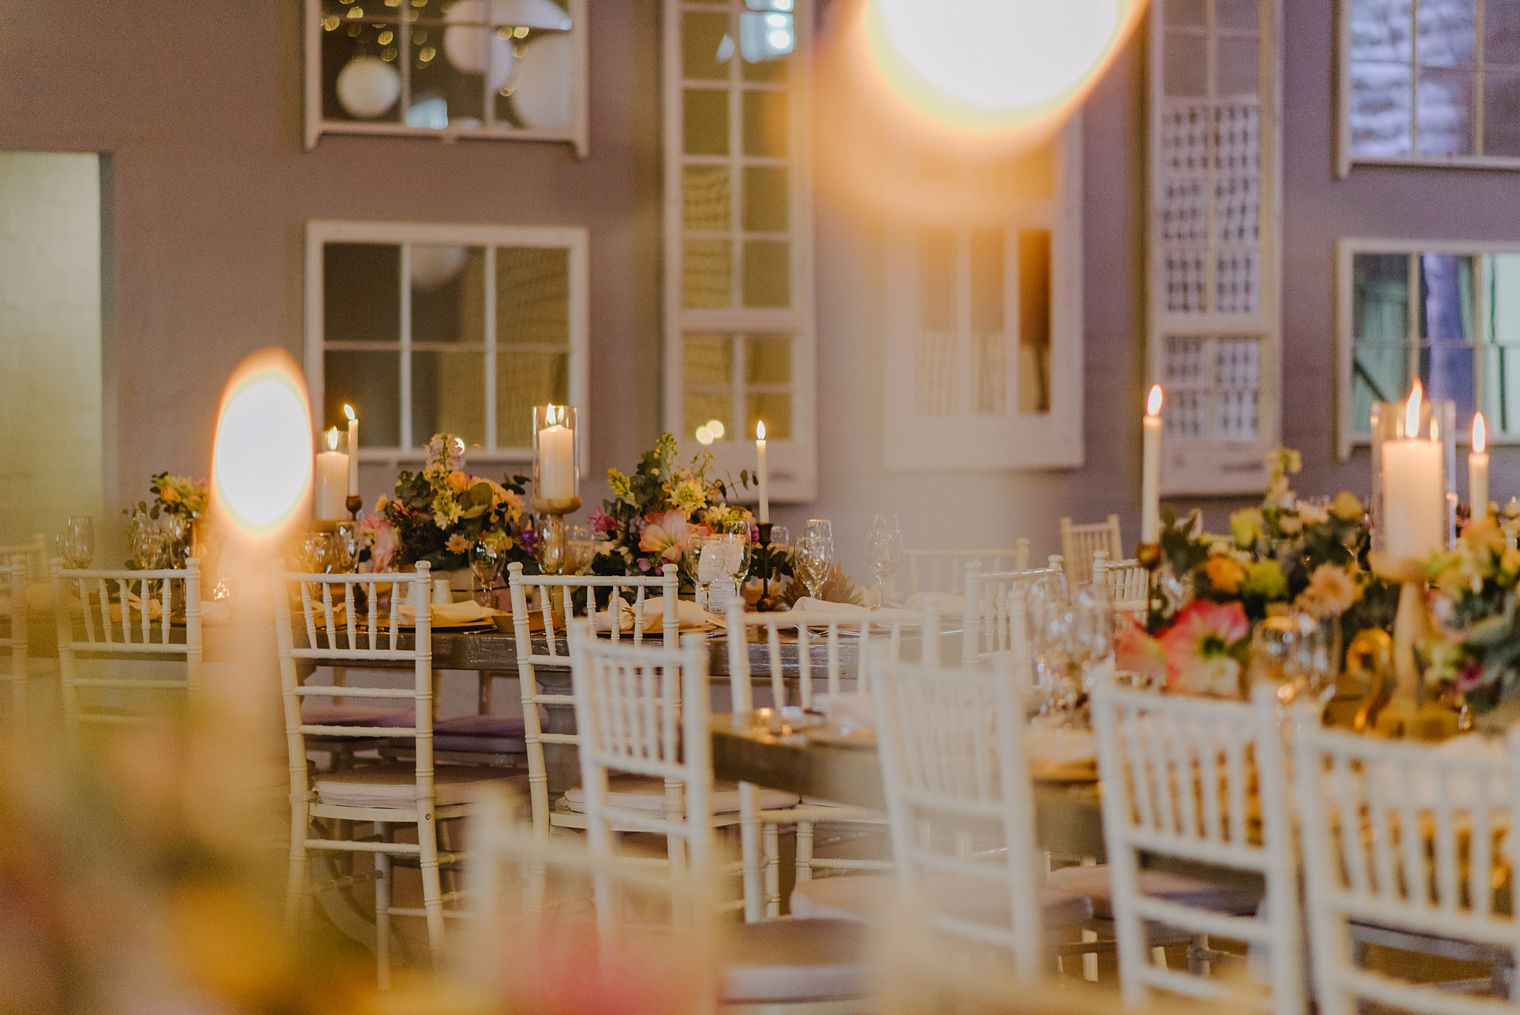 orchards wedding venue details